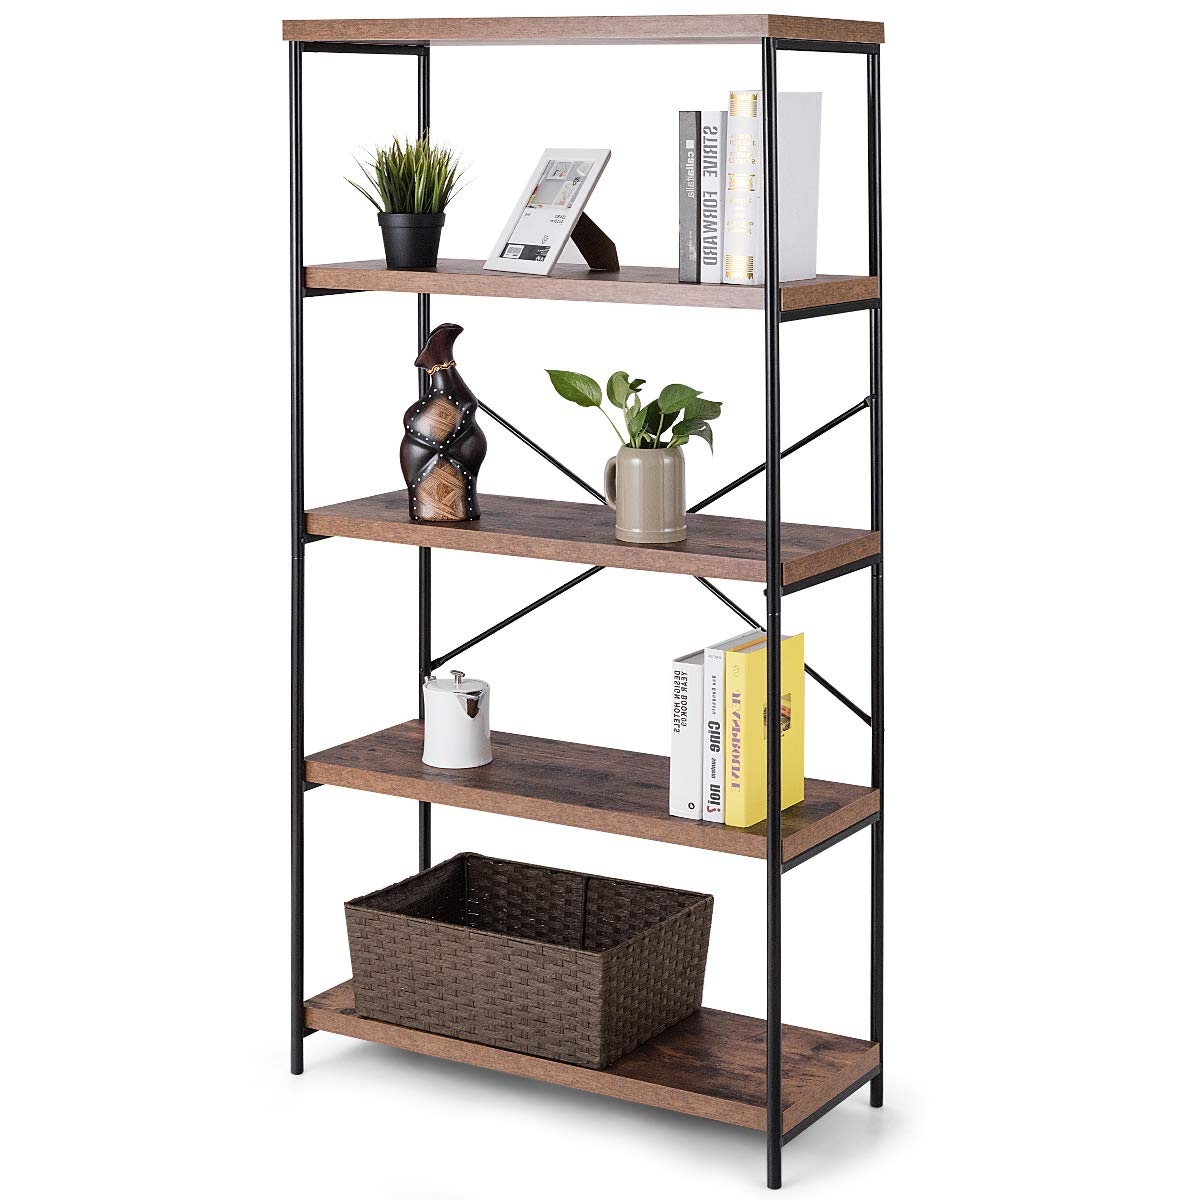 Well Liked Rech 4 Tier Etagere Bookcases Regarding Tangkula 4 Tier Bookcase, Multipurpose Rustic Industrial Bookshelf, Décor  Accent For Home, Office, Living Room, Bedroom, Wood Shelves W/metal  X Shaped (View 19 of 20)